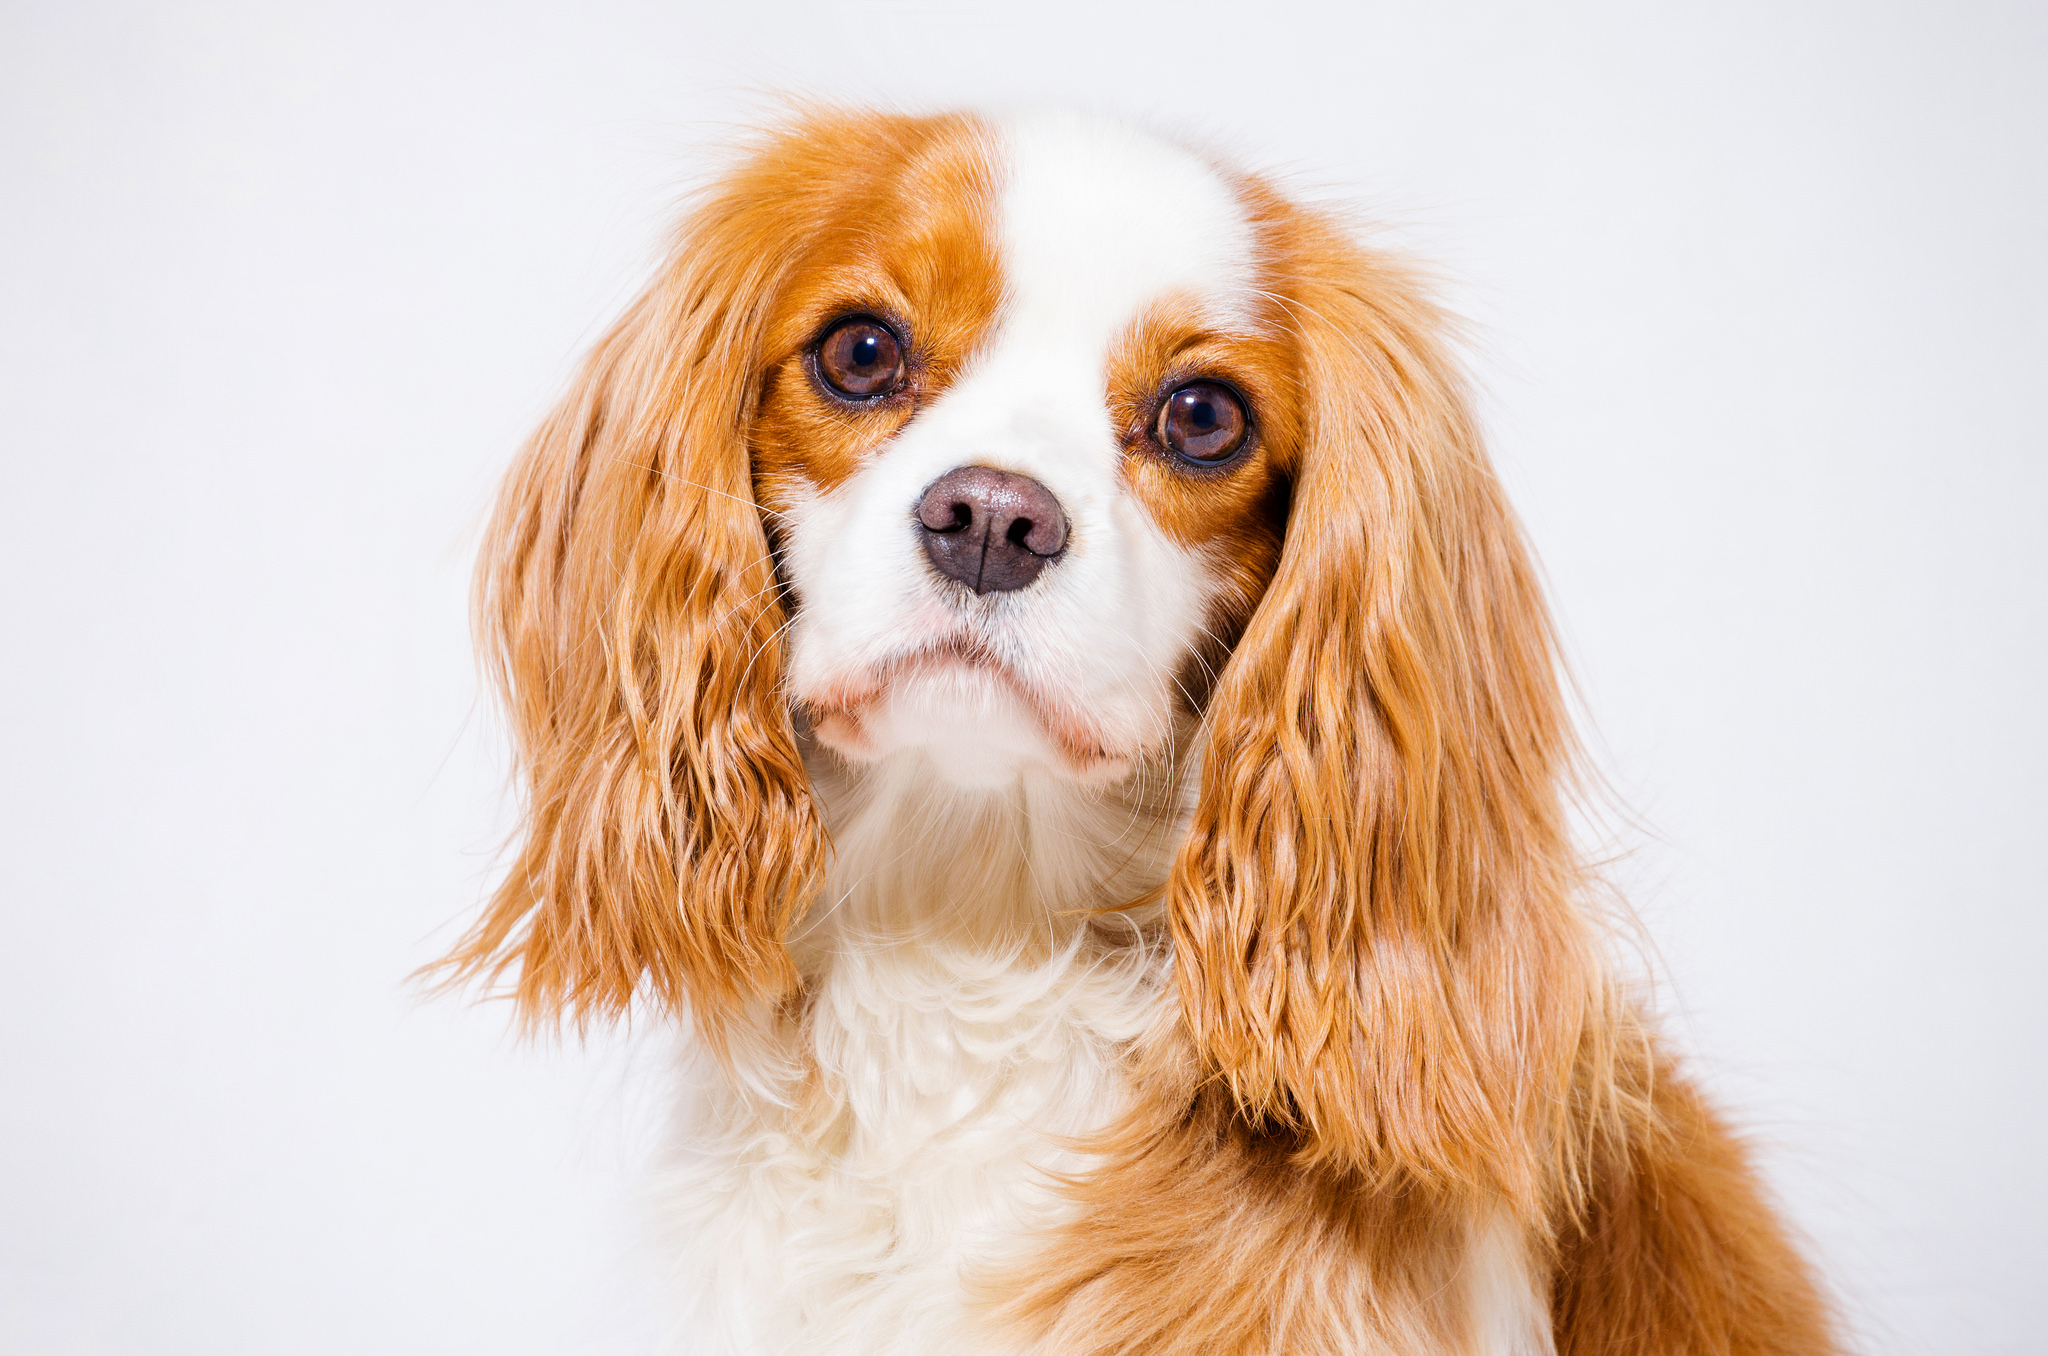 Cavalier King Charles Spaniel Hd Wallpaper Background Image